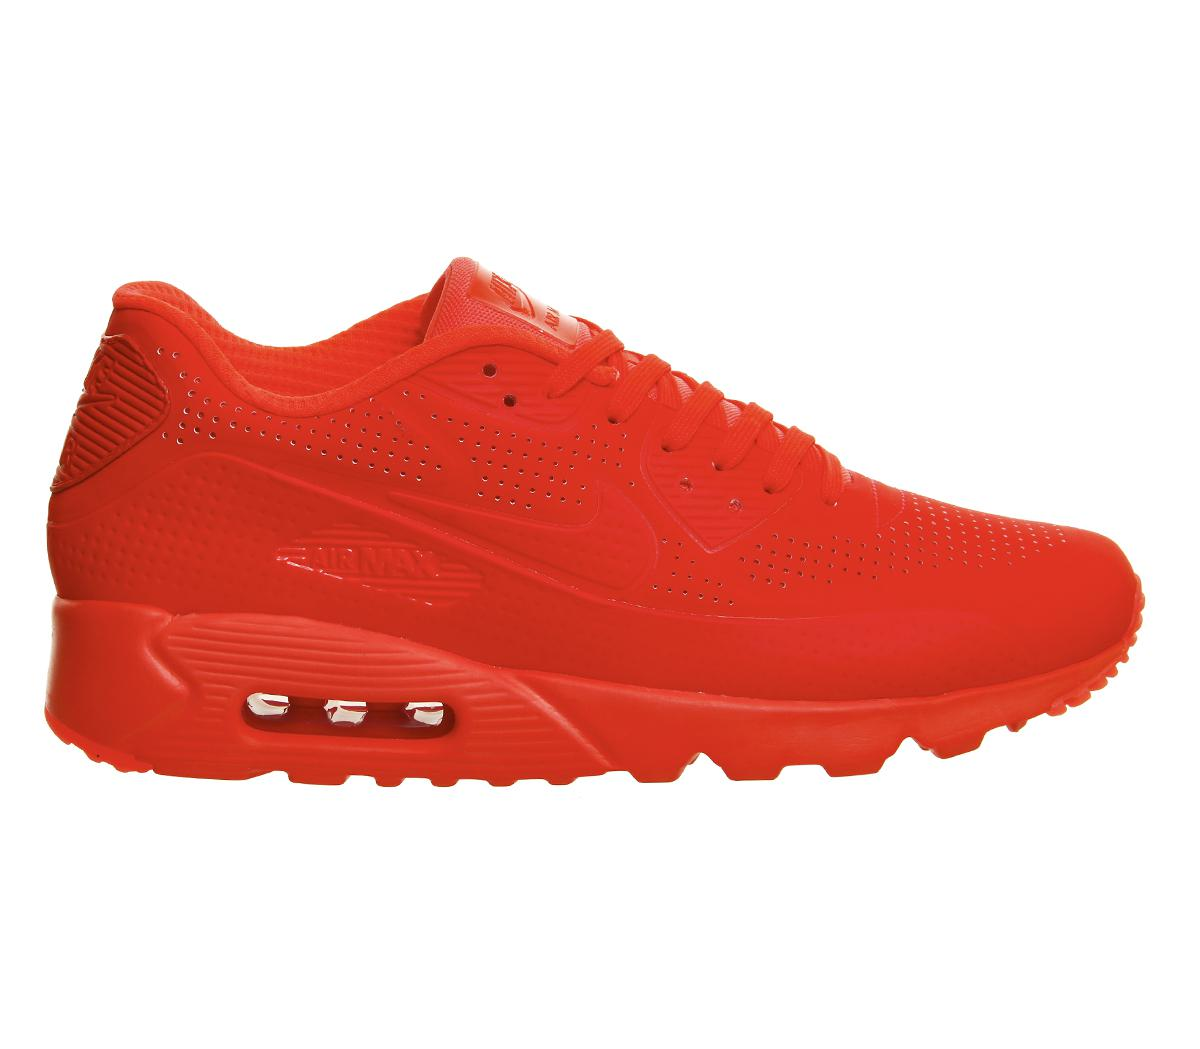 Nike Synthetic Air Max 90 Ultra Moire in Red for Men - Lyst